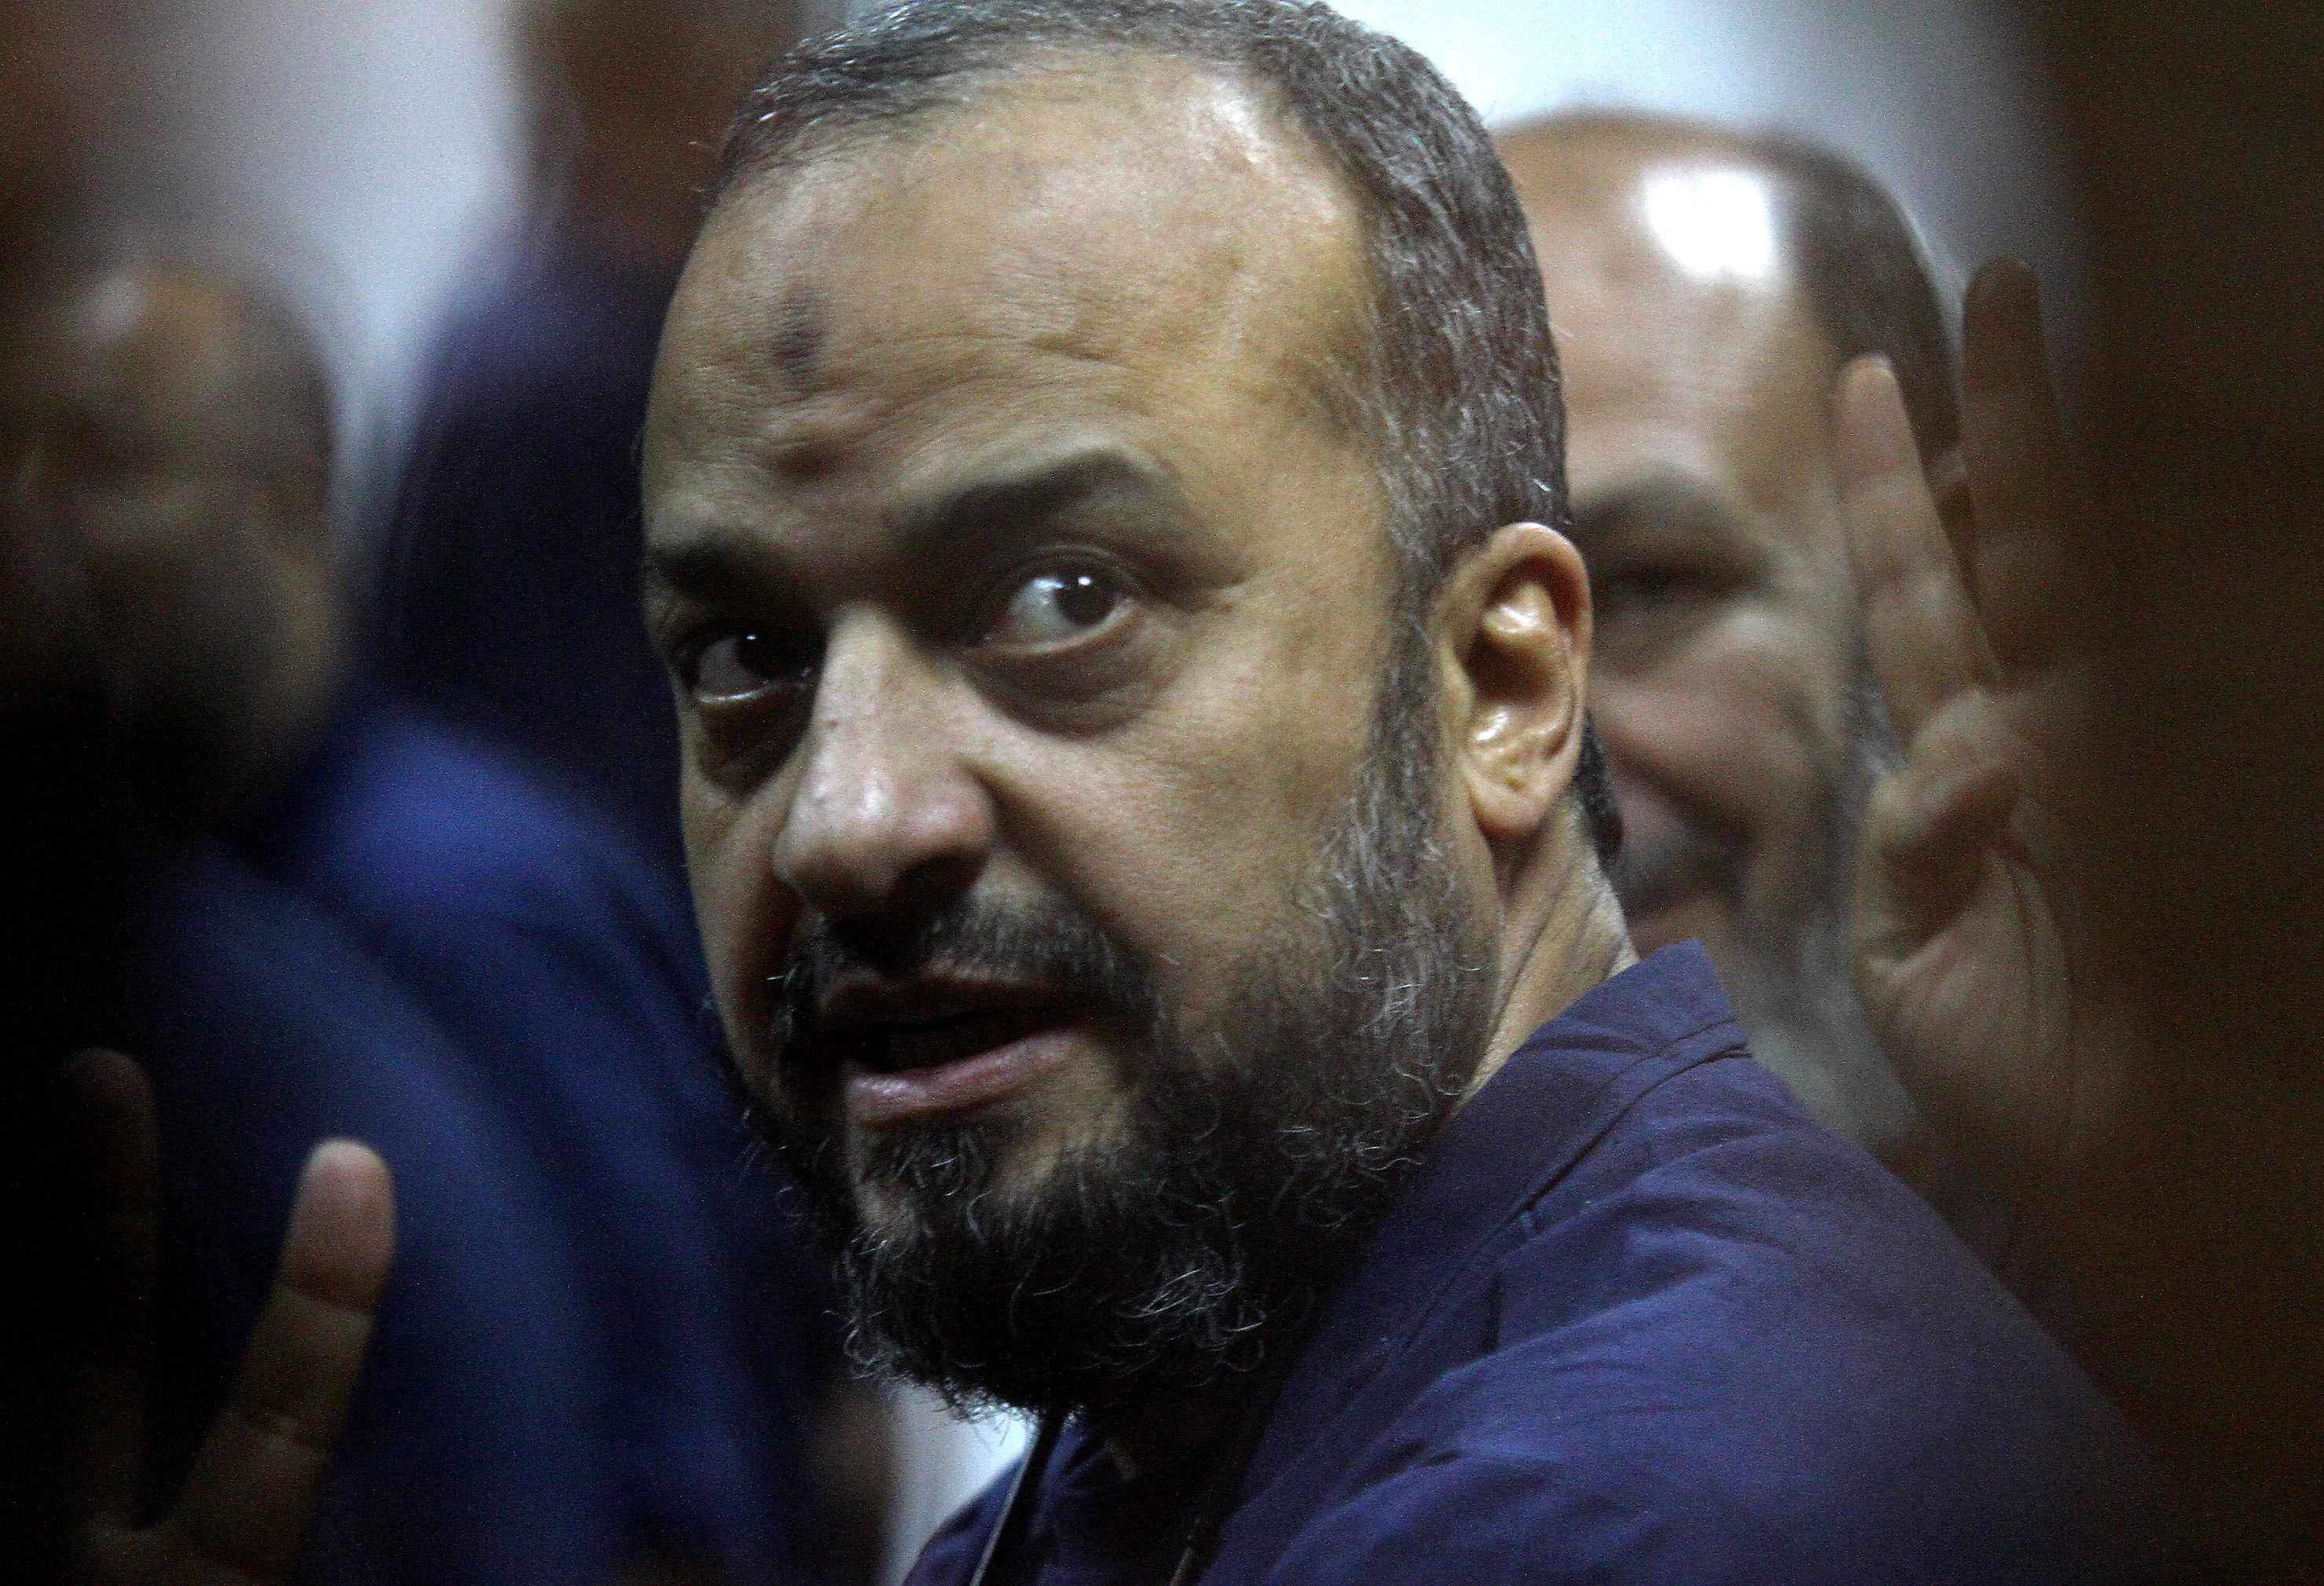 Egyptian Muslim Brotherhood politician Mohamed Al-Beltagy sits inside the defendants' cage during his trial at a police academy in Cairo on Thursday.  (AFP PHOTO / TAREK EL-GABASS)